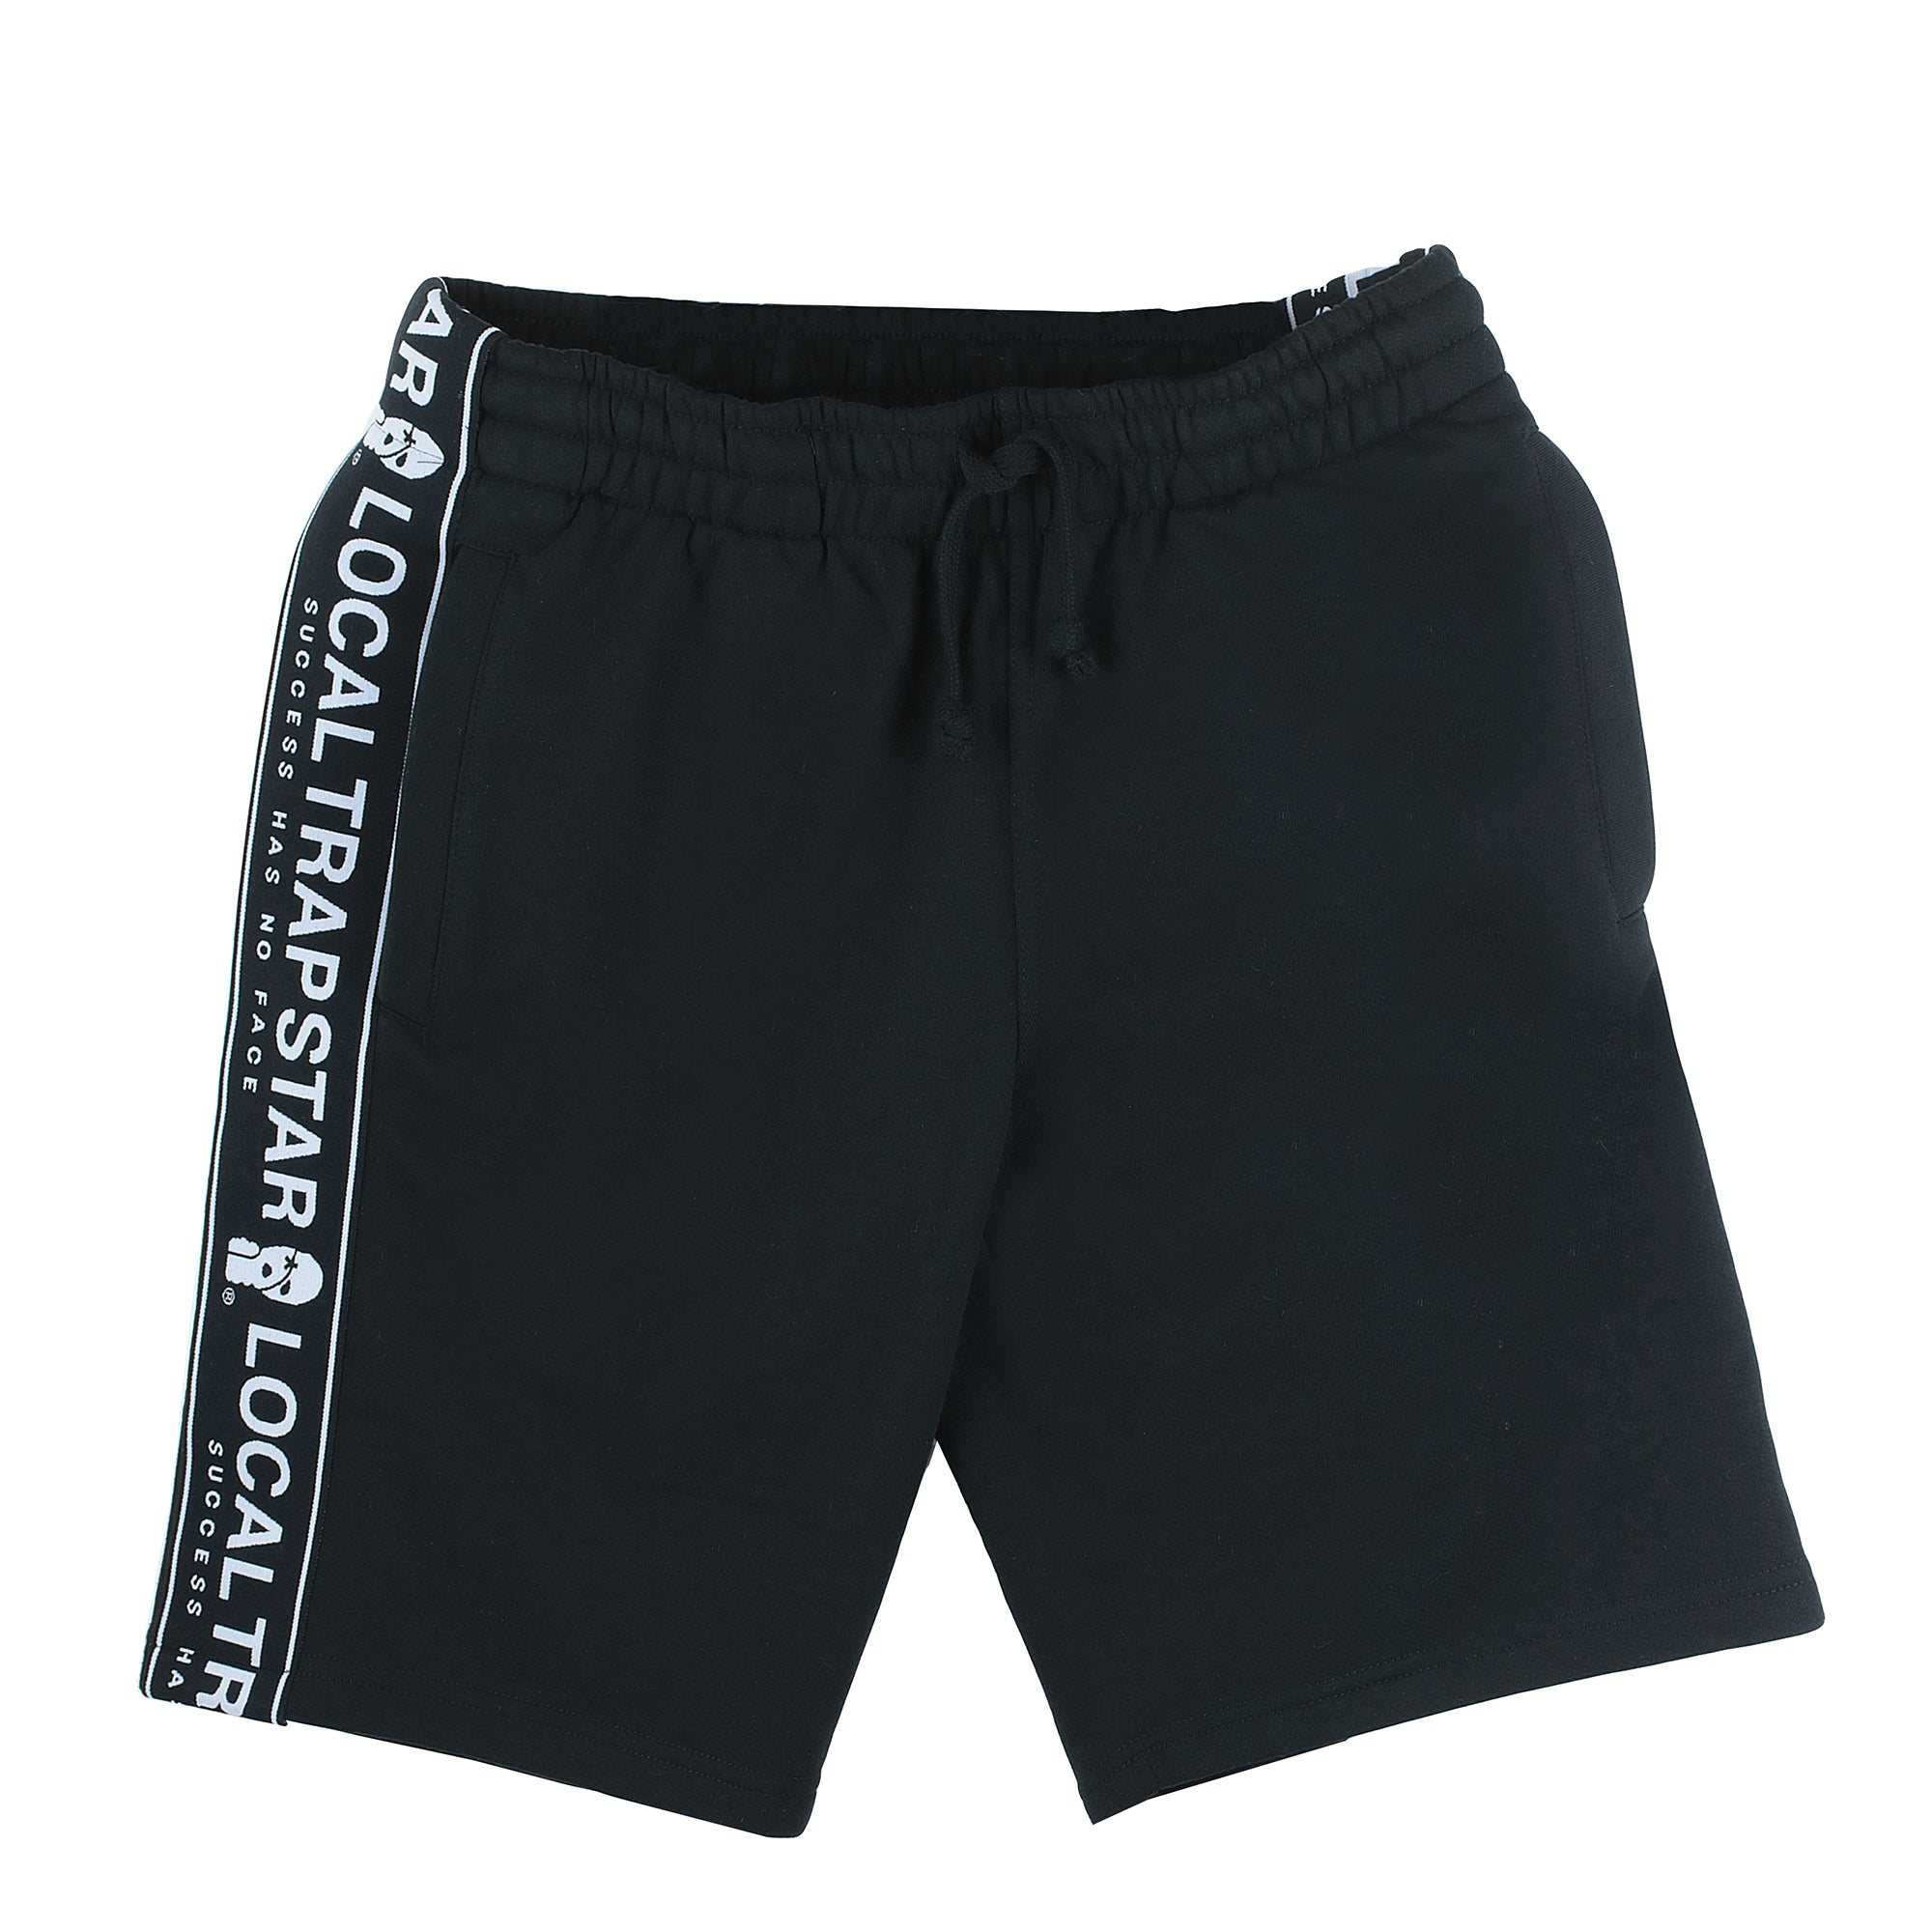 products/Black_Shorts_Front.jpg